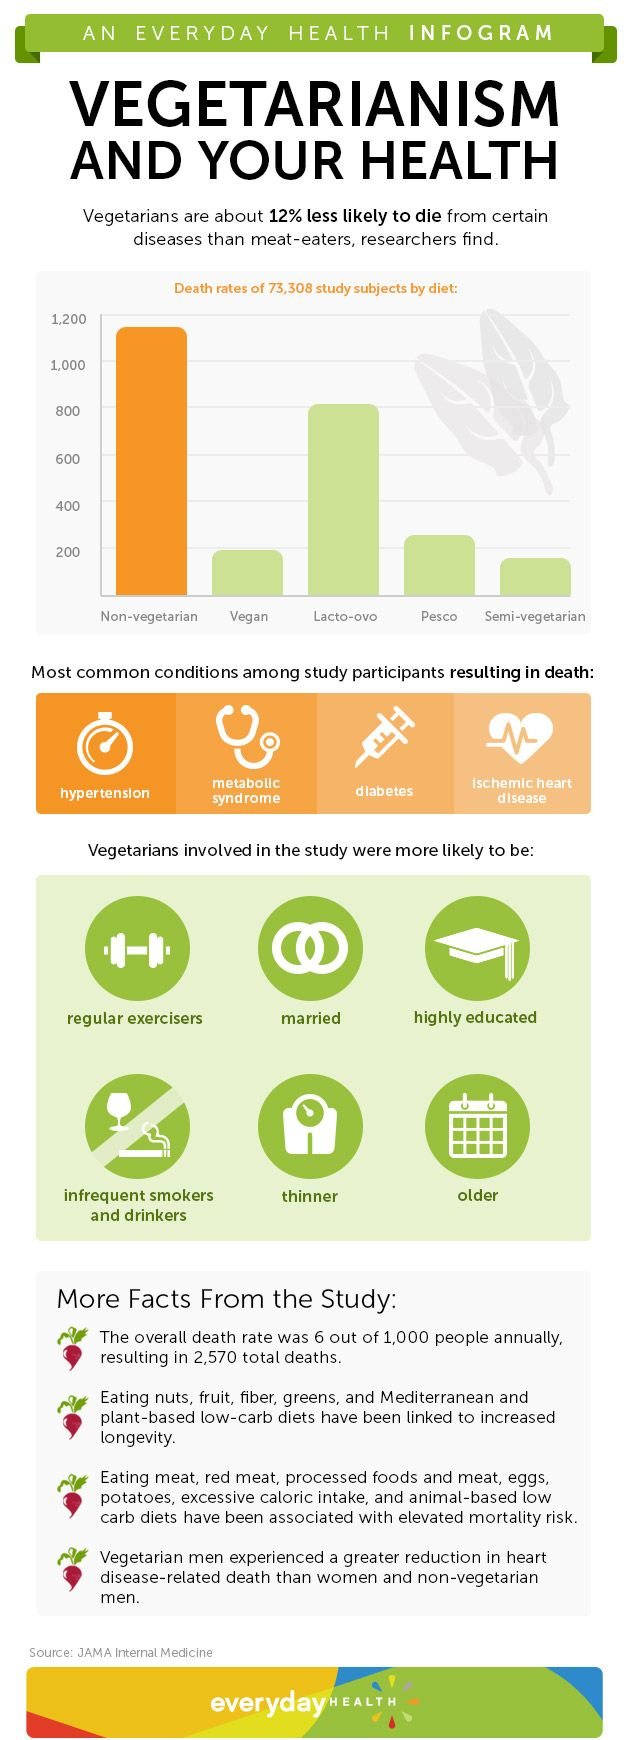 Vegetarians are about 12% less likely to die from certain diseases than meat-eaters, researchers find. Check out this infographic to find out why the vegetarian diet is tied to lower death rates. Does this surprise you?